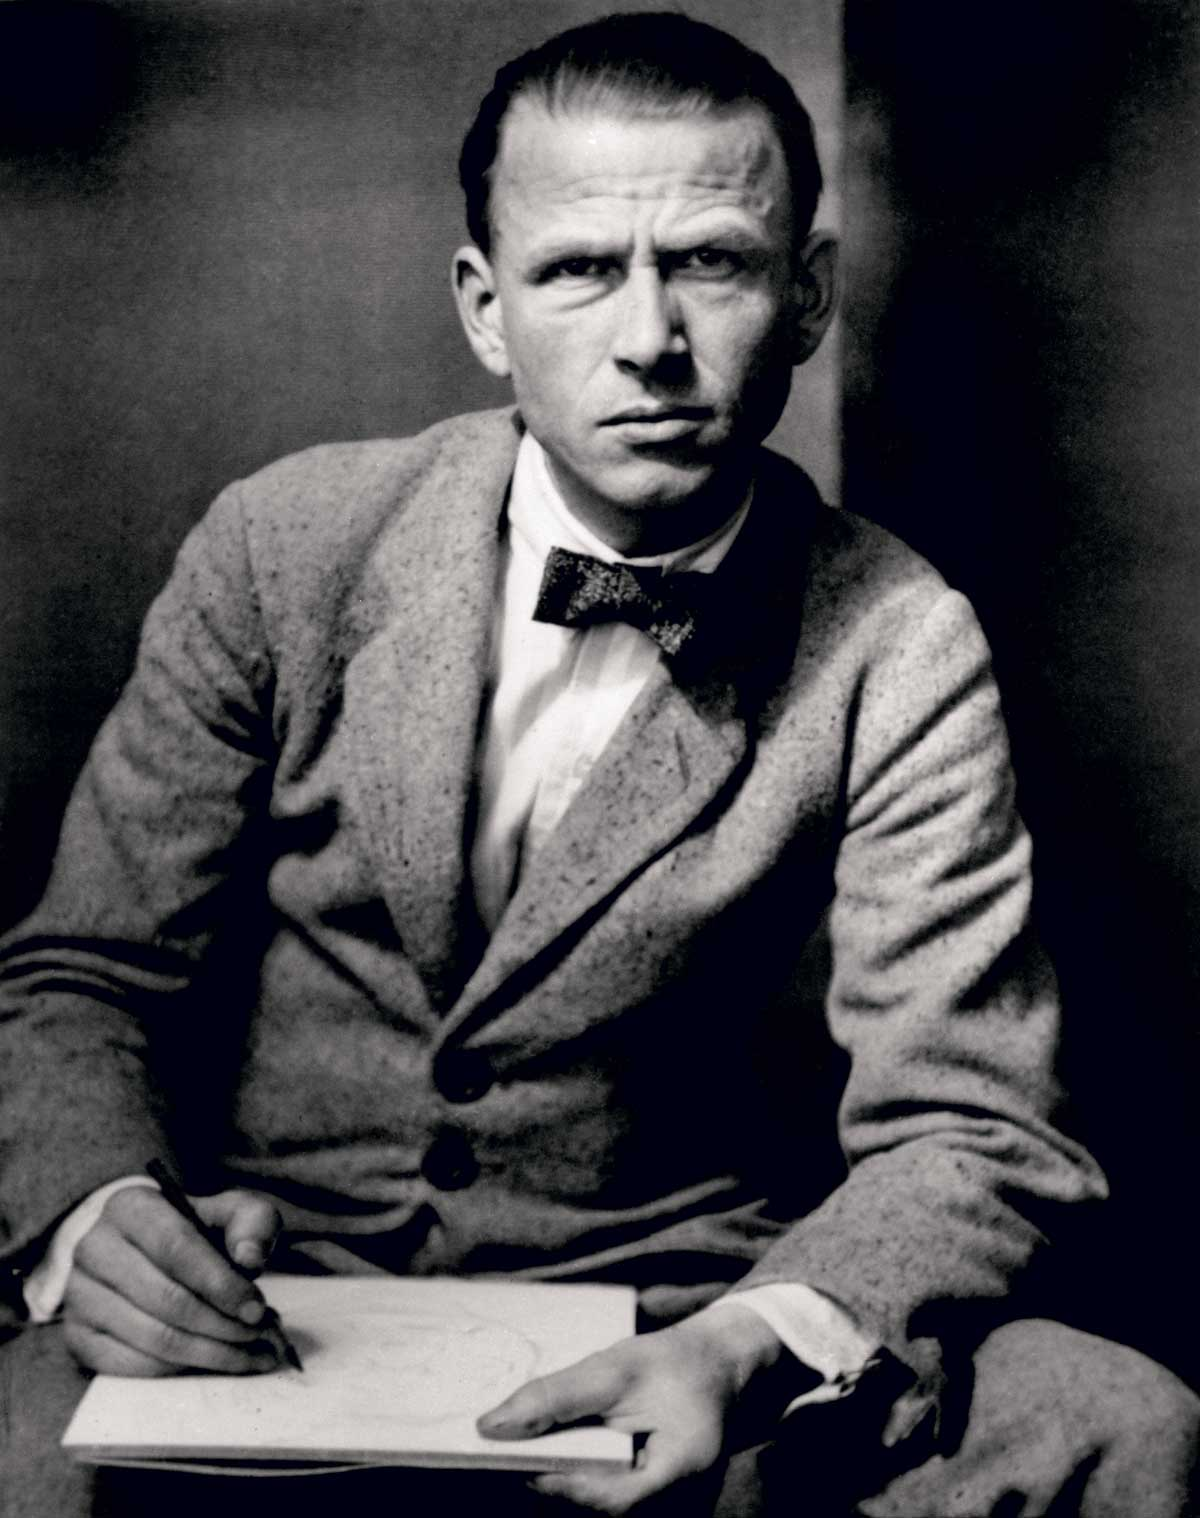 Otto Dix, 1928 © Ullstein Bild/Getty Images